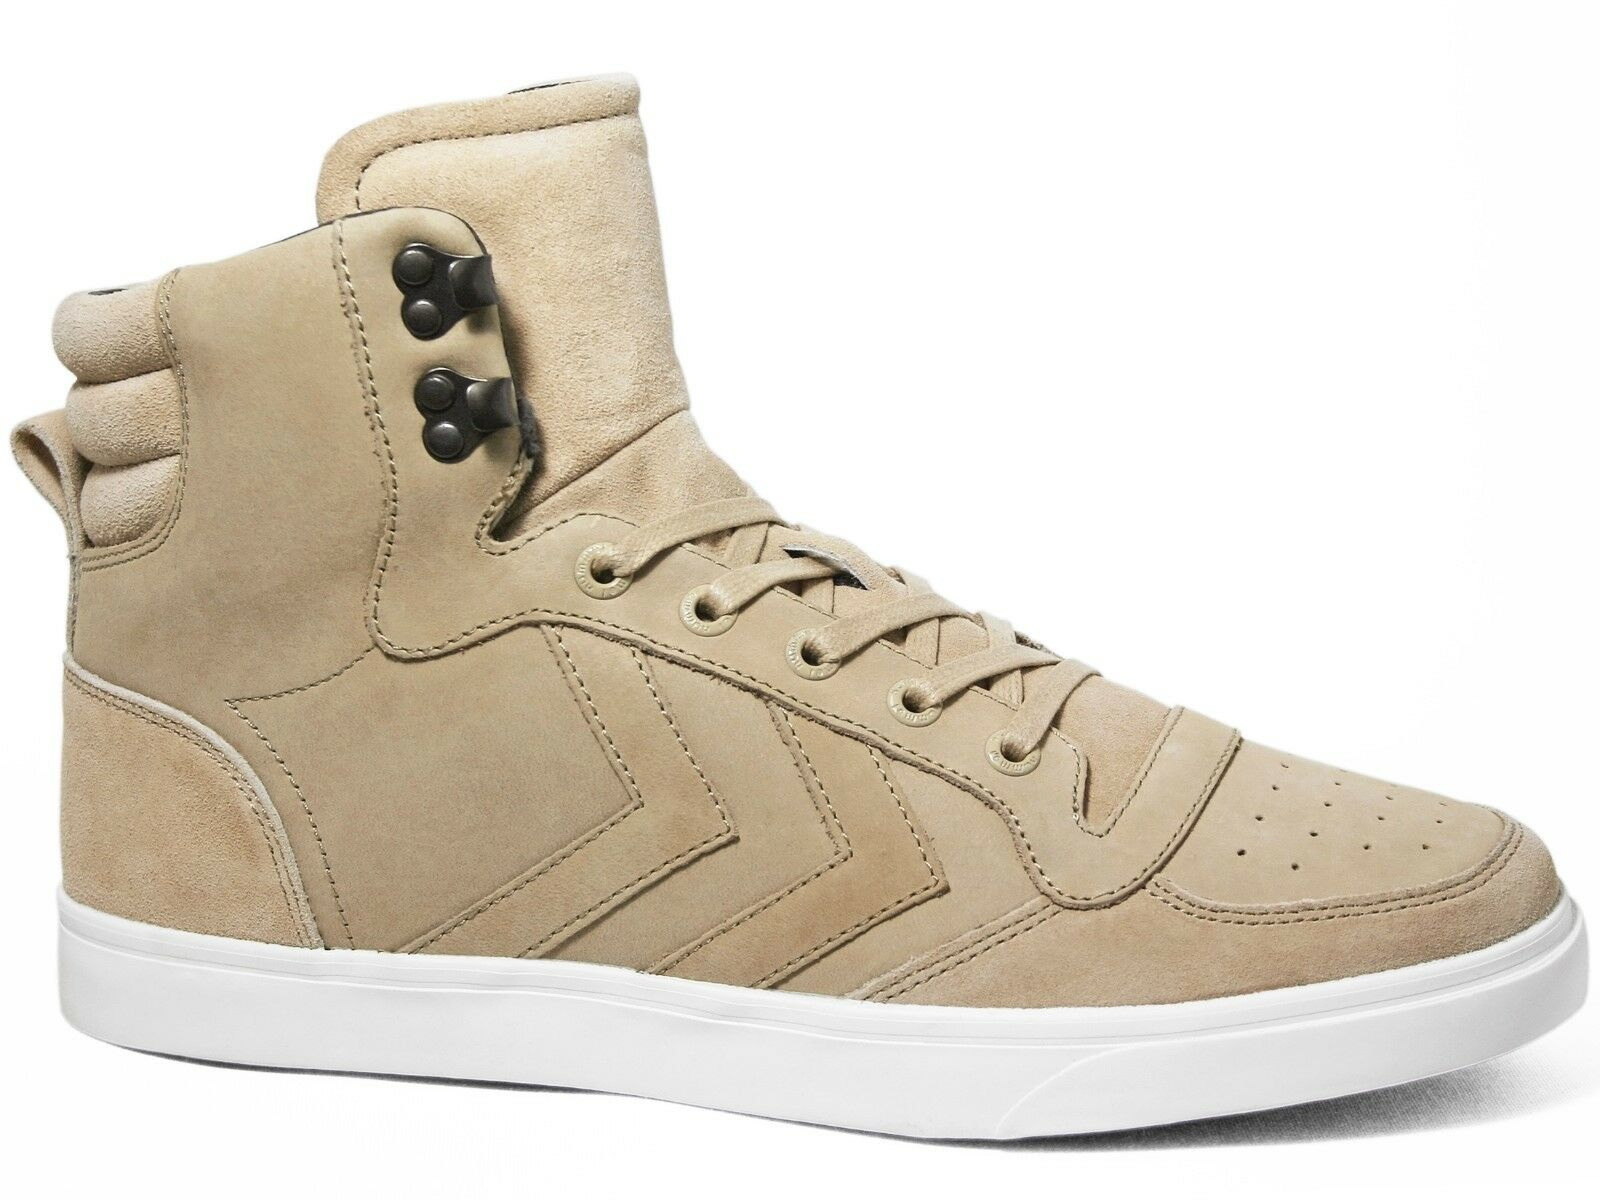 Hummel Stadil Winter Sneaker High Leather Nomad Hellbraun 65-057-8339 Sneakers